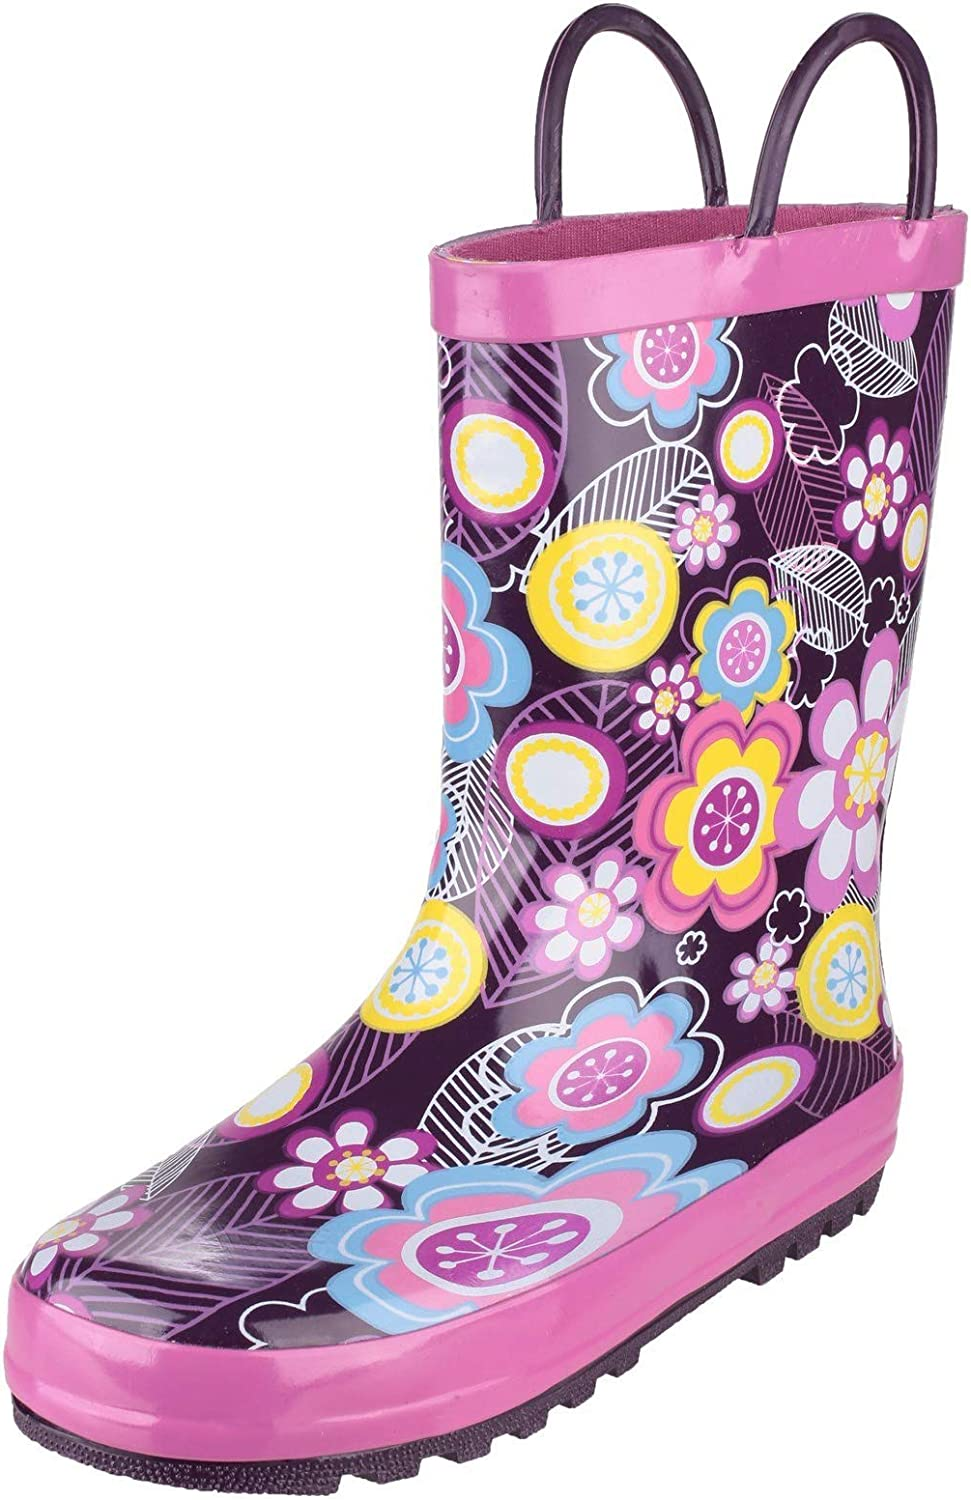 Cotswold Girls Puddle Patterned Rubber Welly Wellington Boots